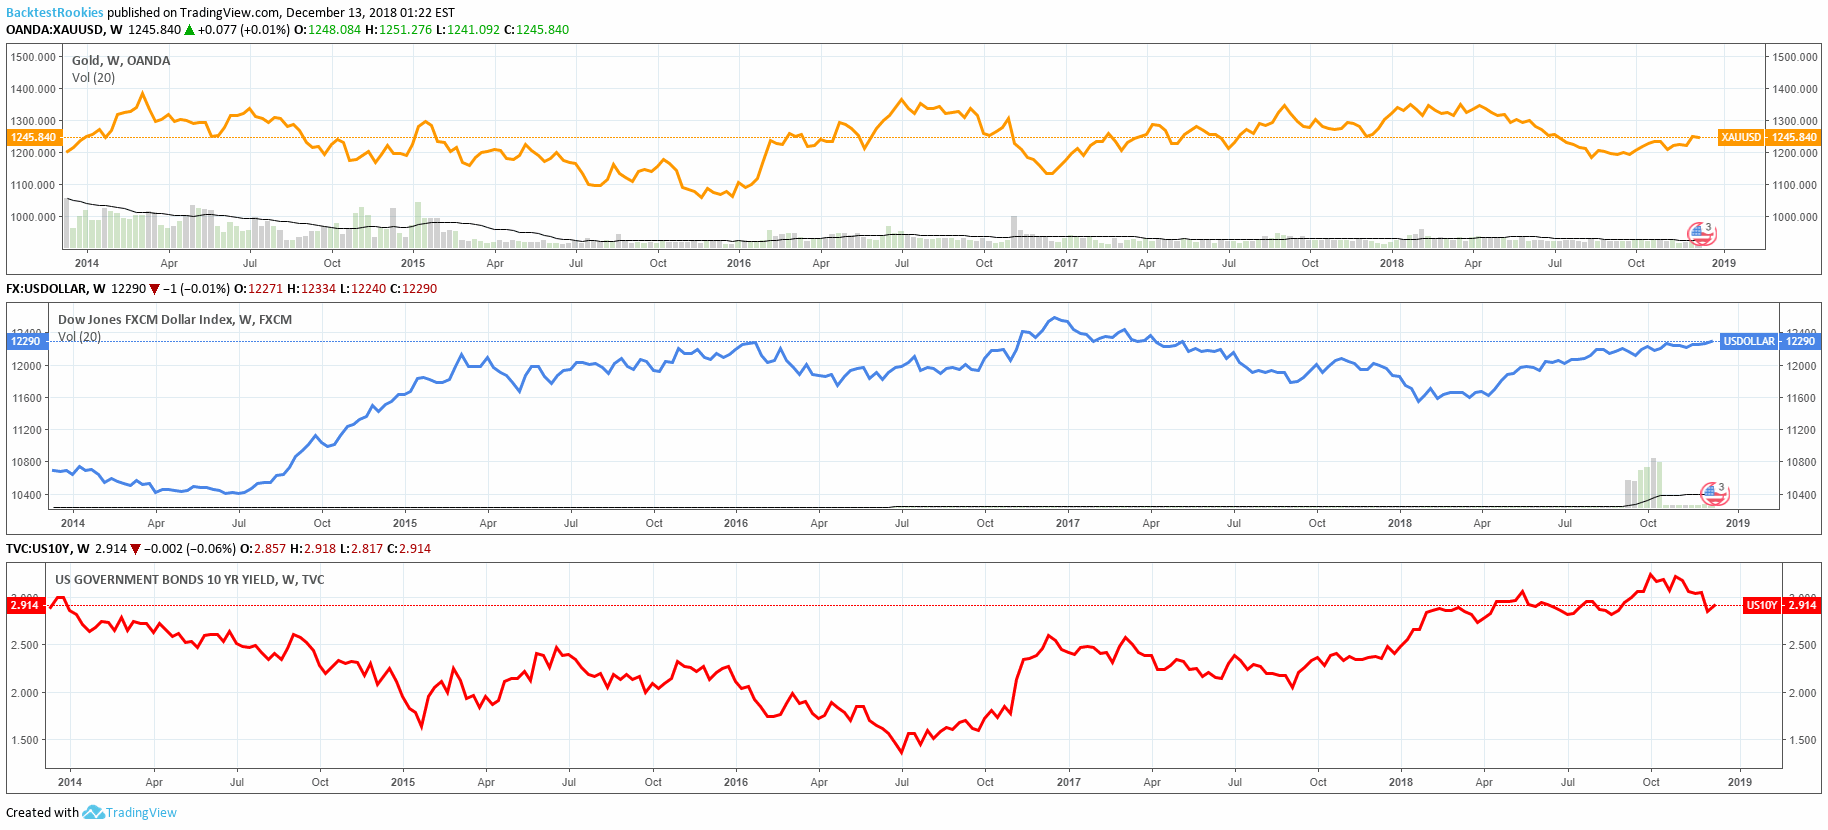 Price Charts comparing Gold, US Dollar Index and US 10 Year bond.